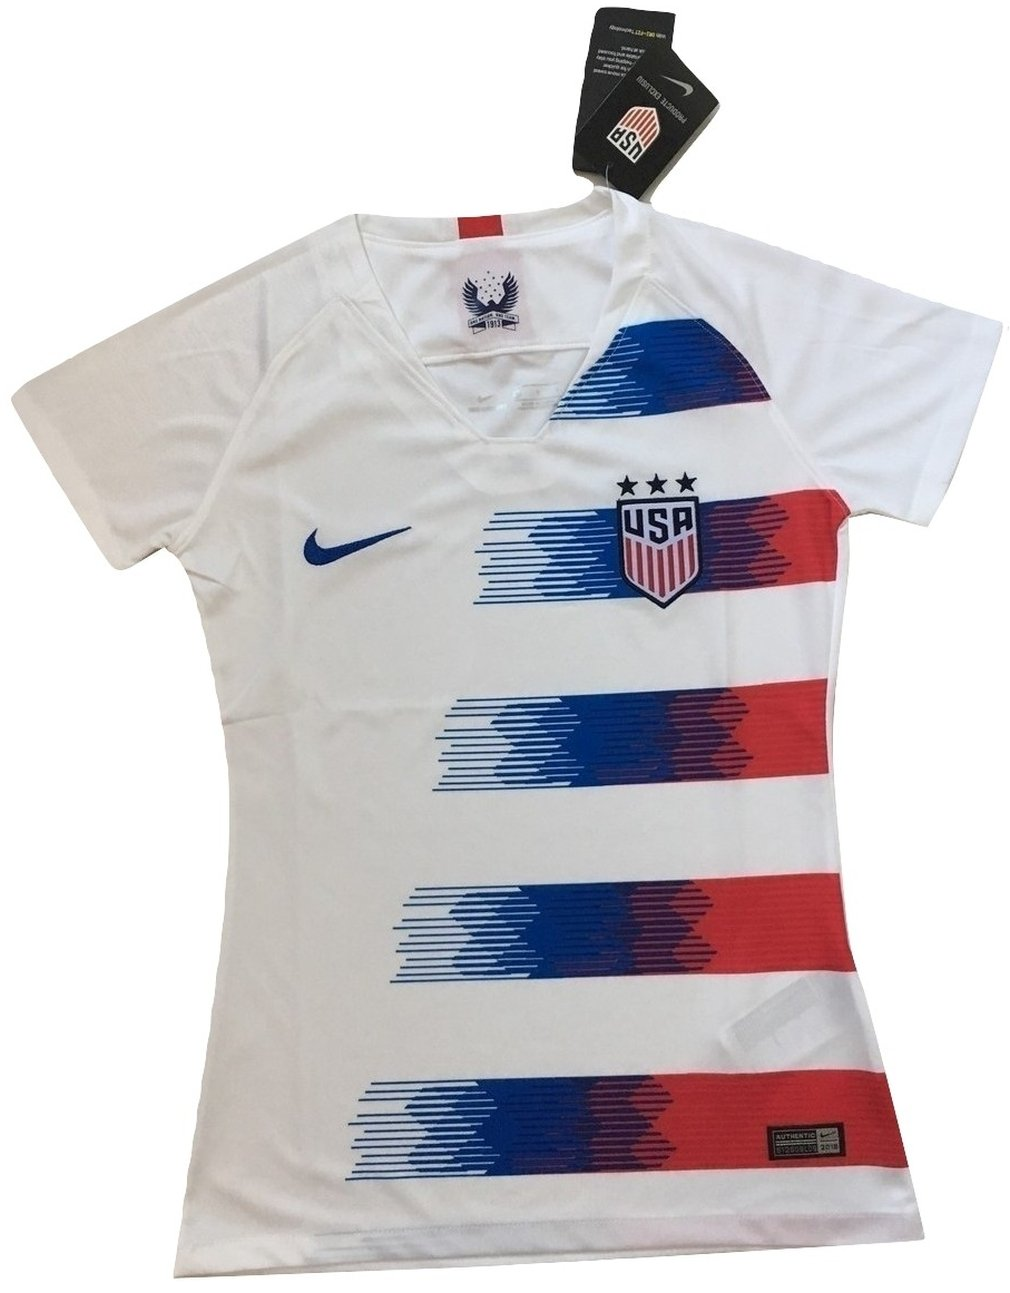 Mallnkakova Women's USA National Team 2018-2019 Home Soccer Jersey White (Women's Medium)